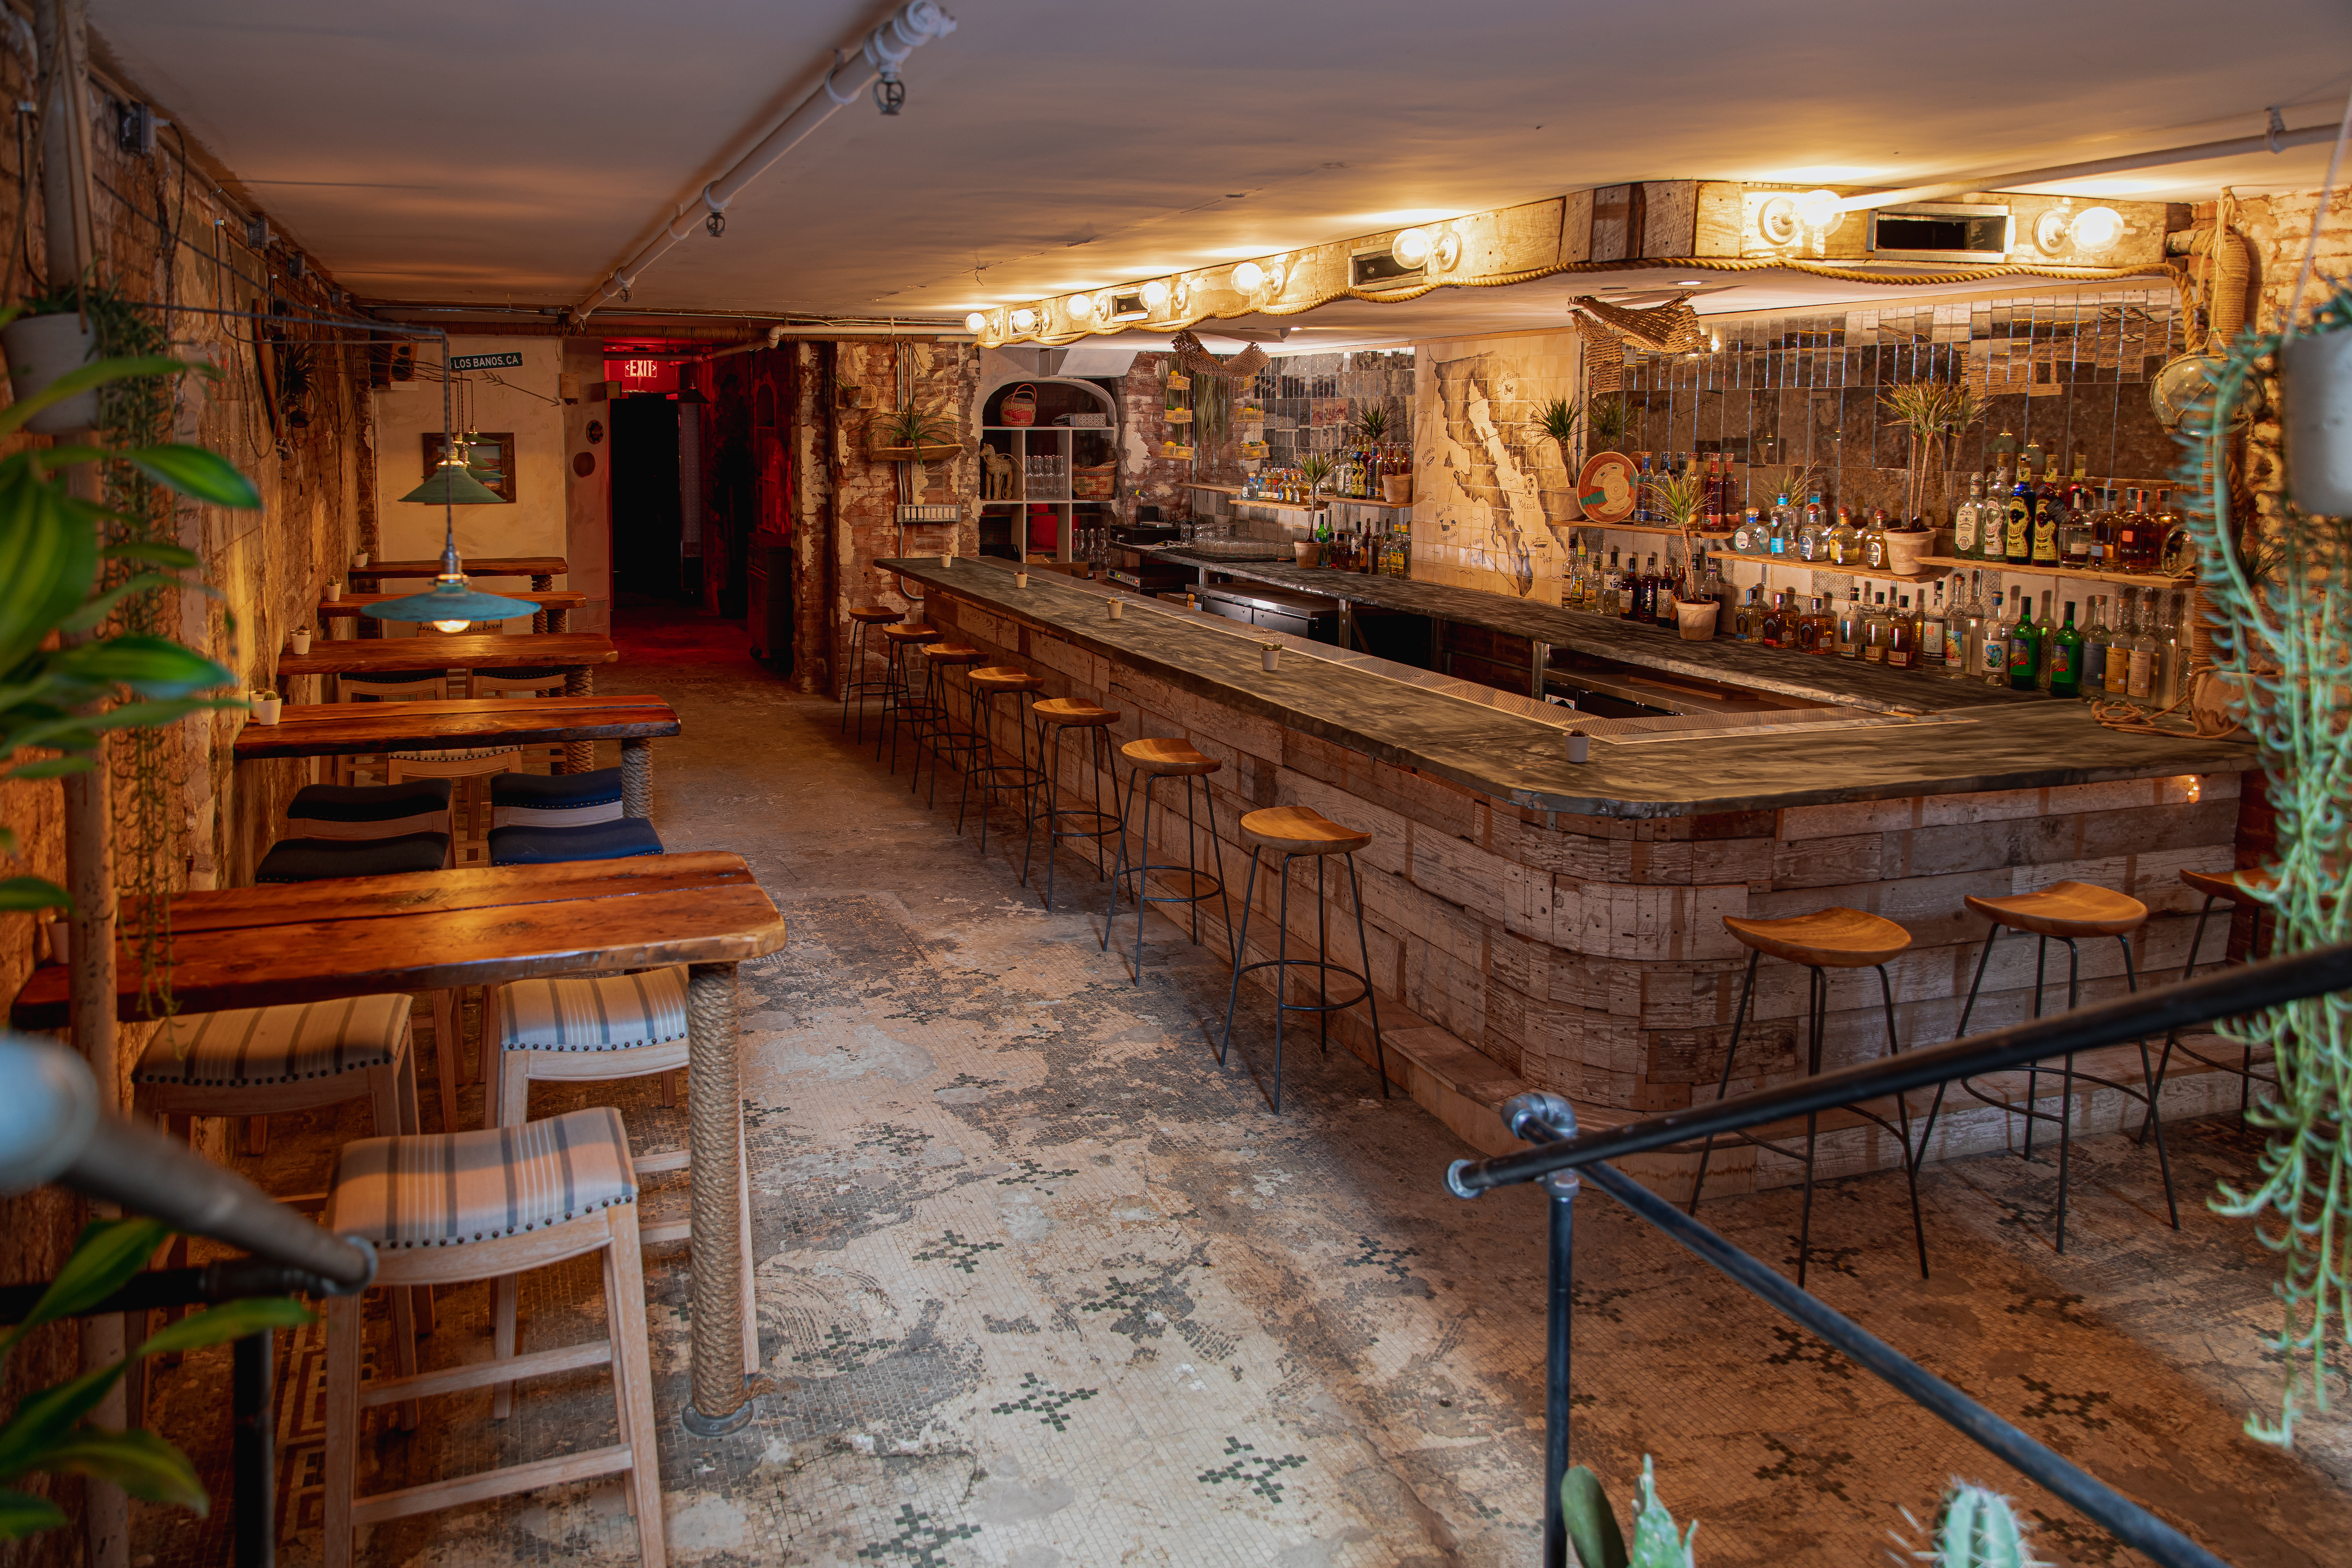 An underground bar with several wooden tables and chairs, along with a long bar countertop to the right where there are several stools